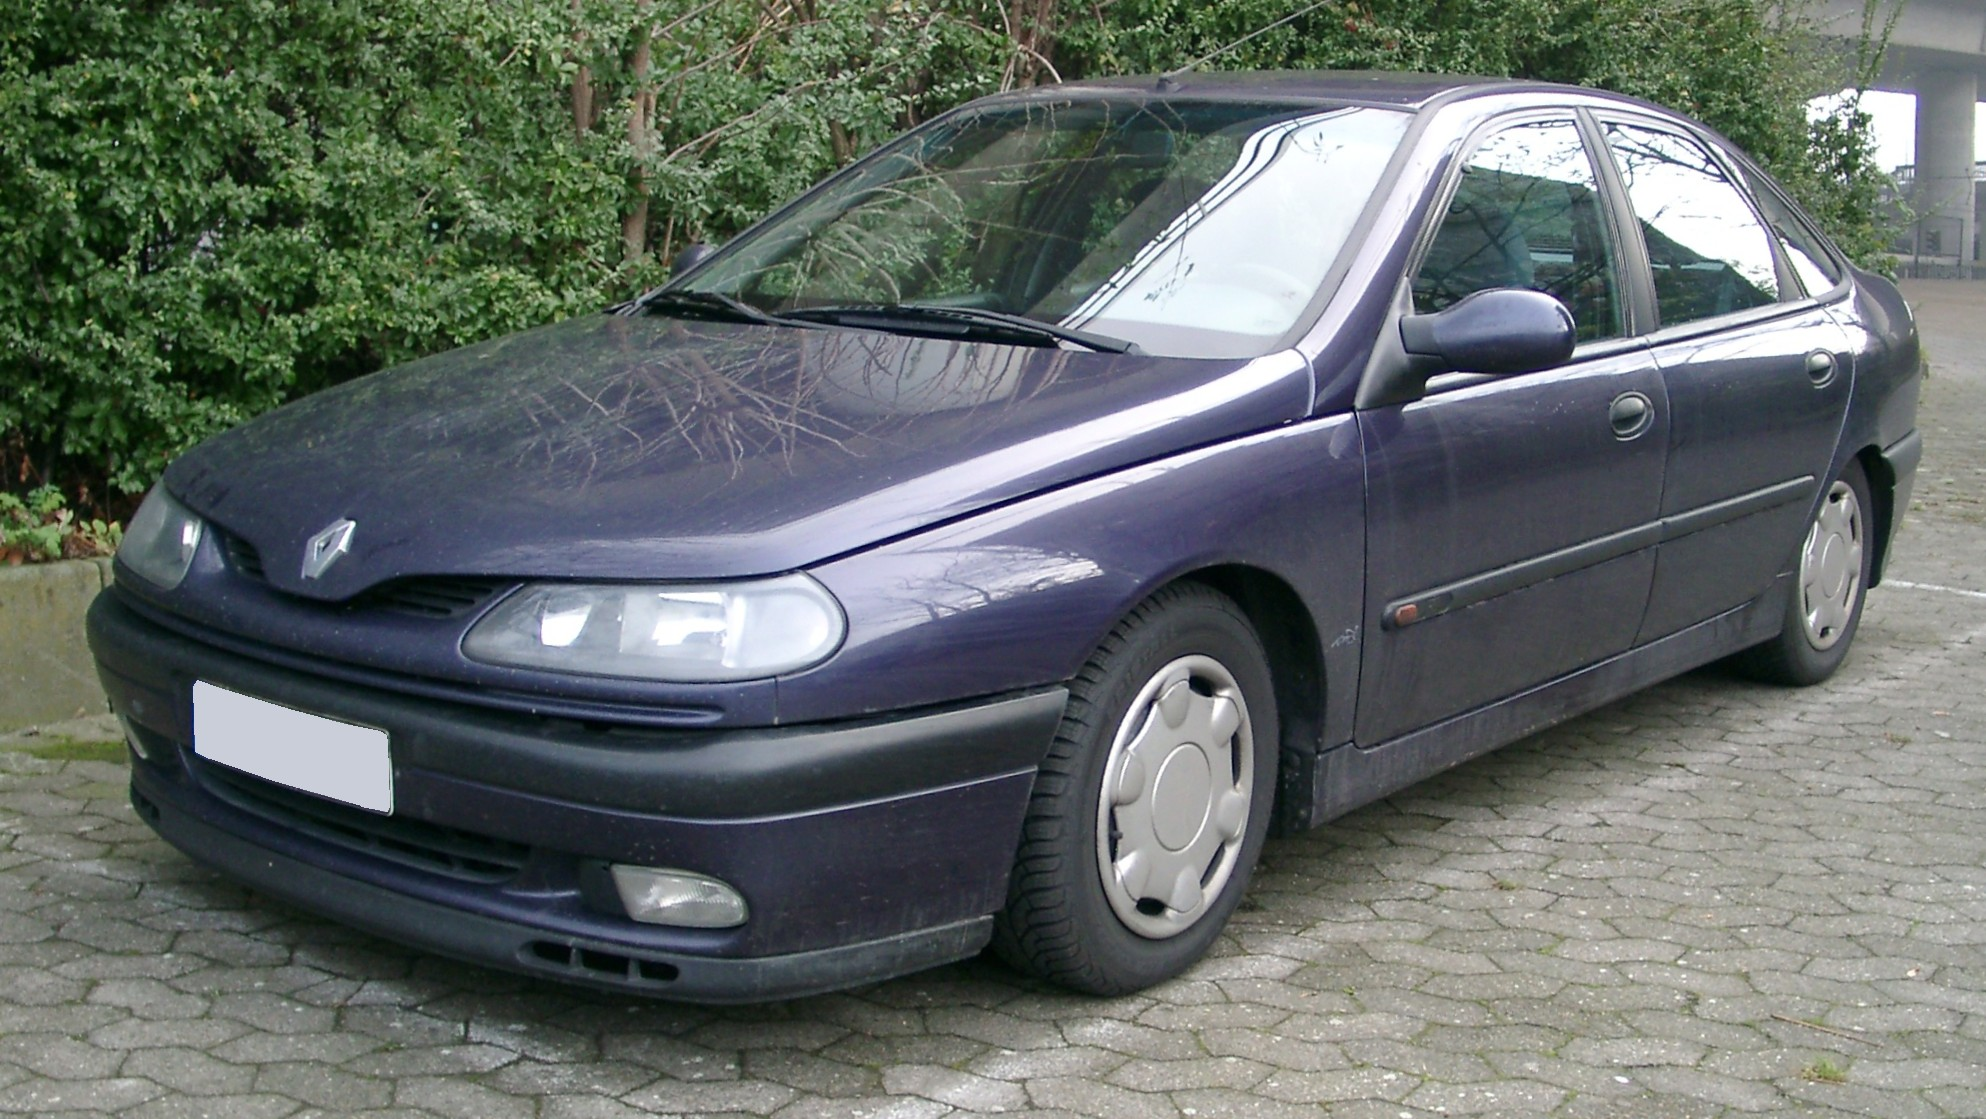 photo of Eric Cantona Renault Laguna - car